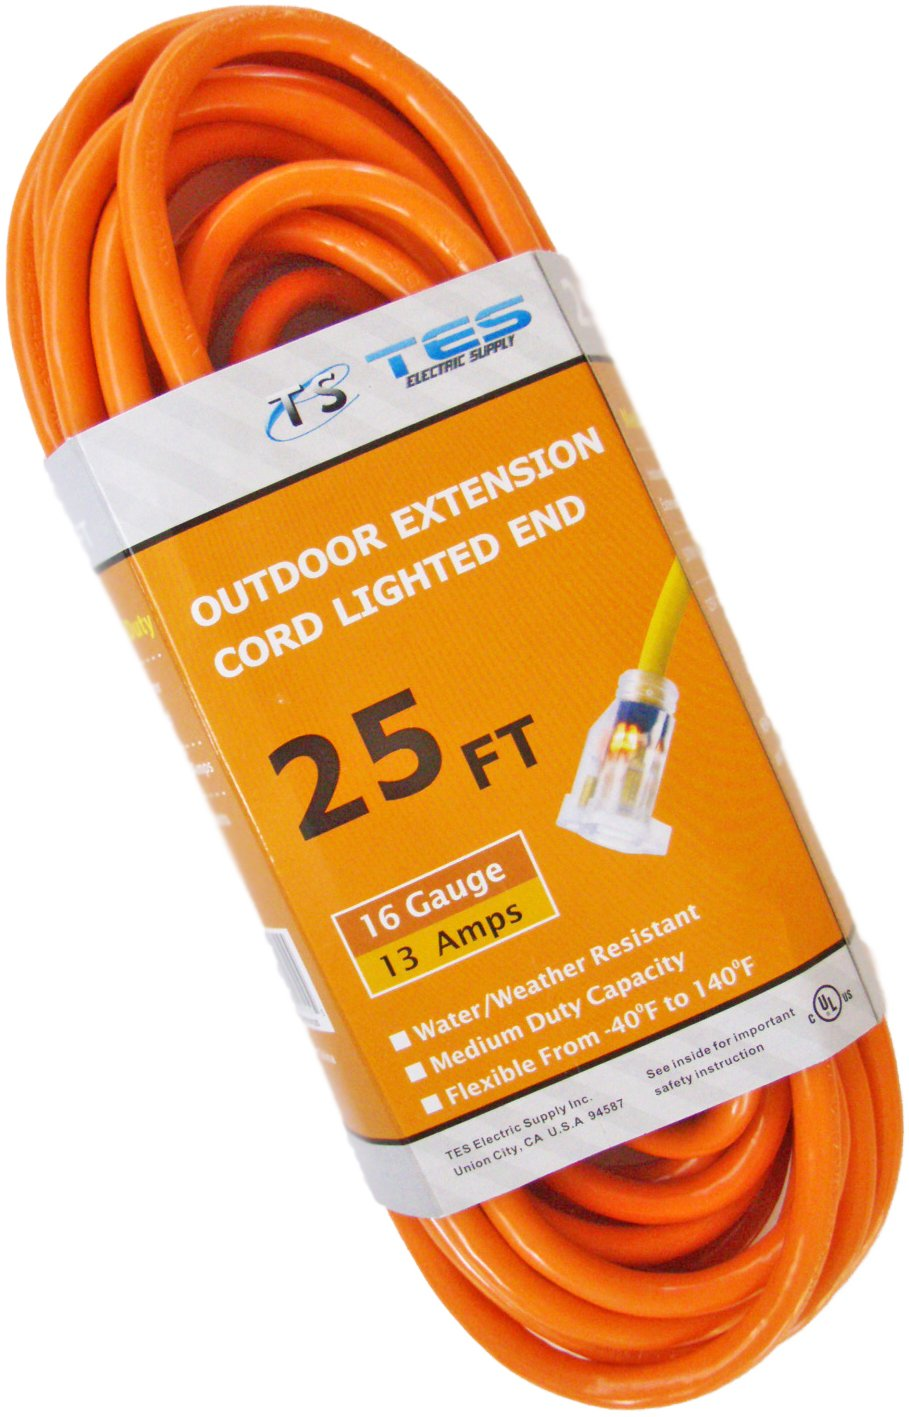 TES 16 Gauge 25 Ft. 16/3 SJTW Medium Duty Extension Cord with Lighted Plug